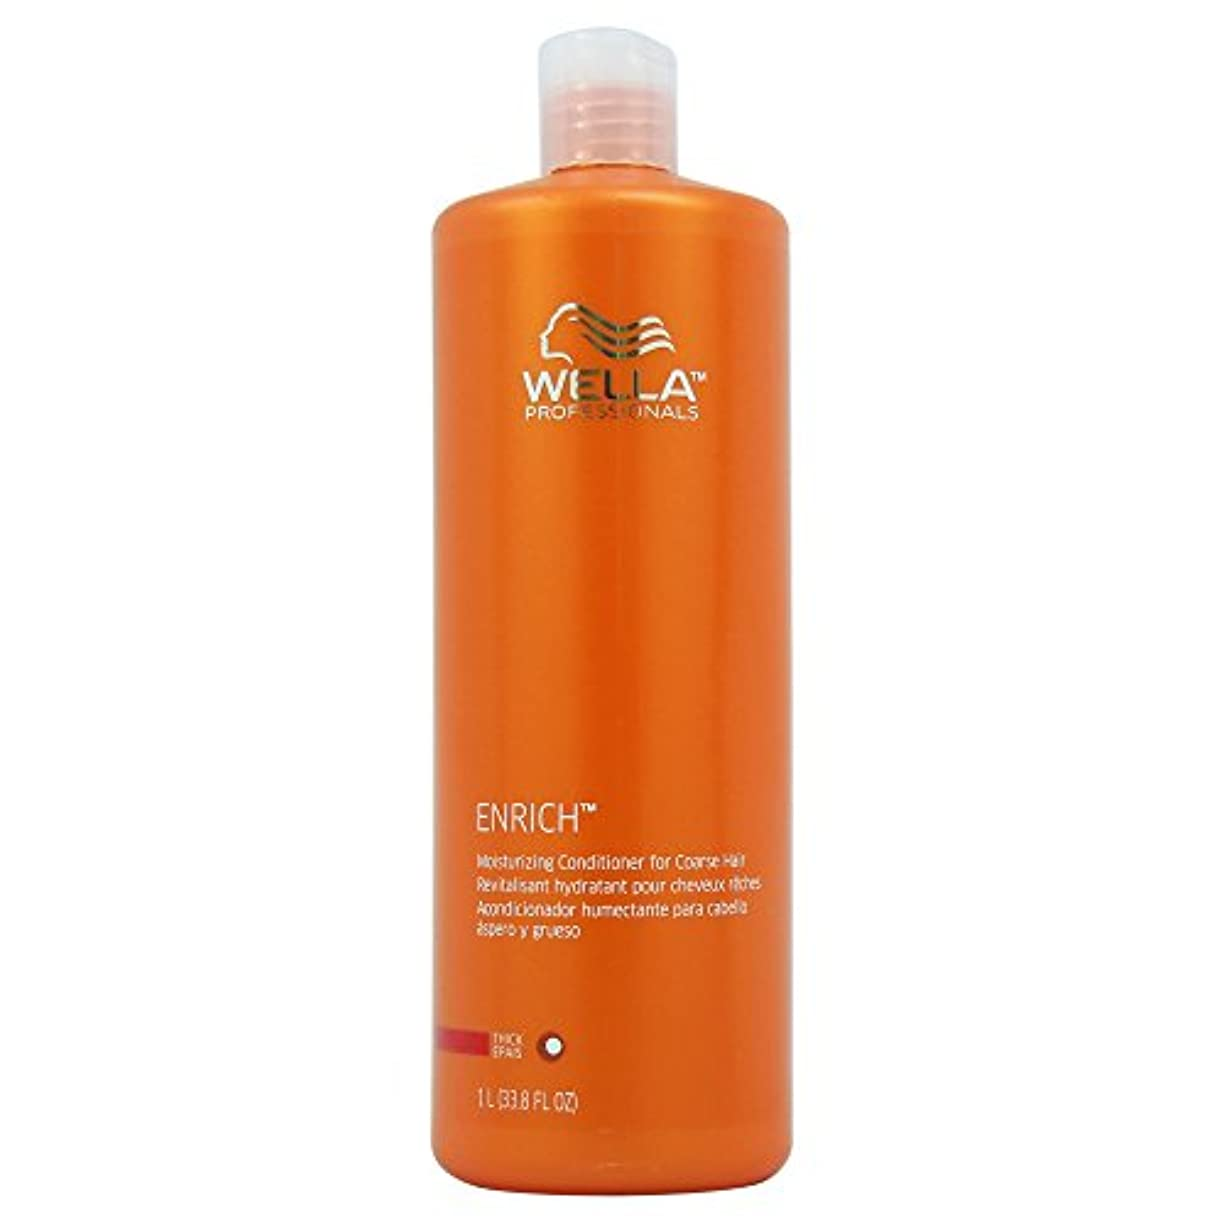 Wella Enriched Moisturizing Conditioner for Coarse Hair for Unisex, 33.8 Ounce by Wella